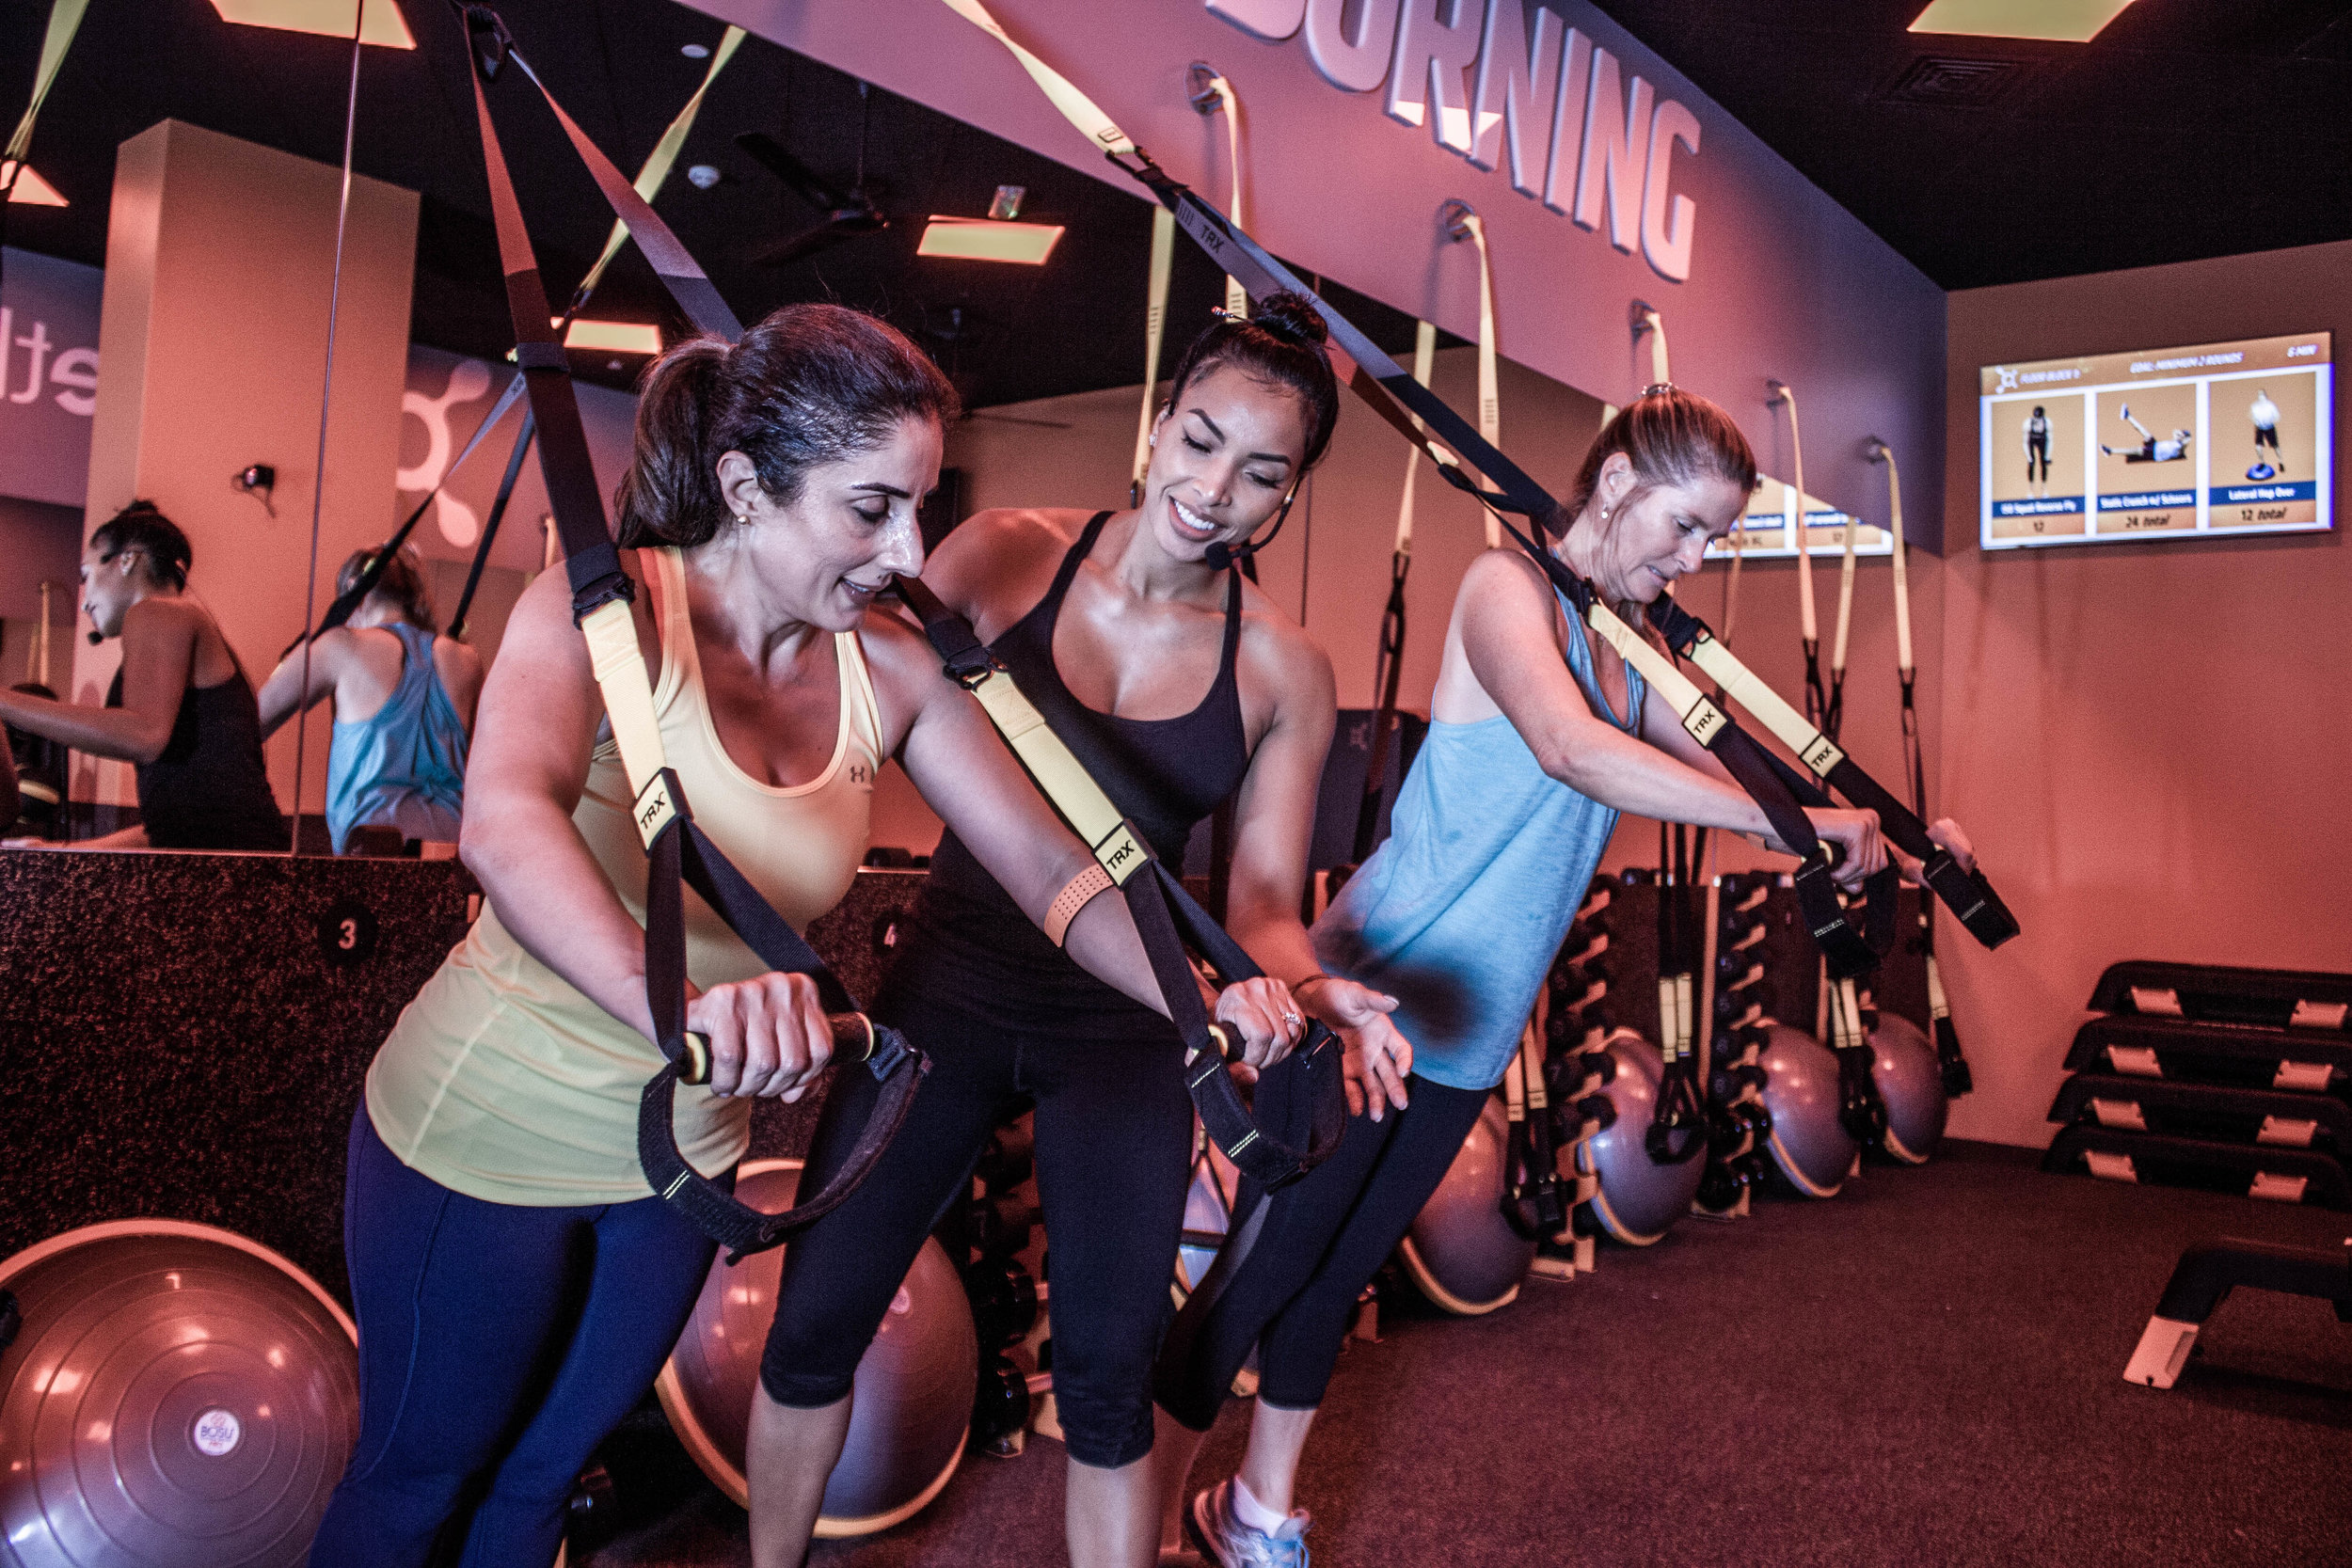 COACH SUPPORT - At Orangetheory, you'll get the energy of a group workout with the attention of an experienced personal coach. Our coaches are knowledgeable, encouraging and are committed to helping you meet your fitness goals.